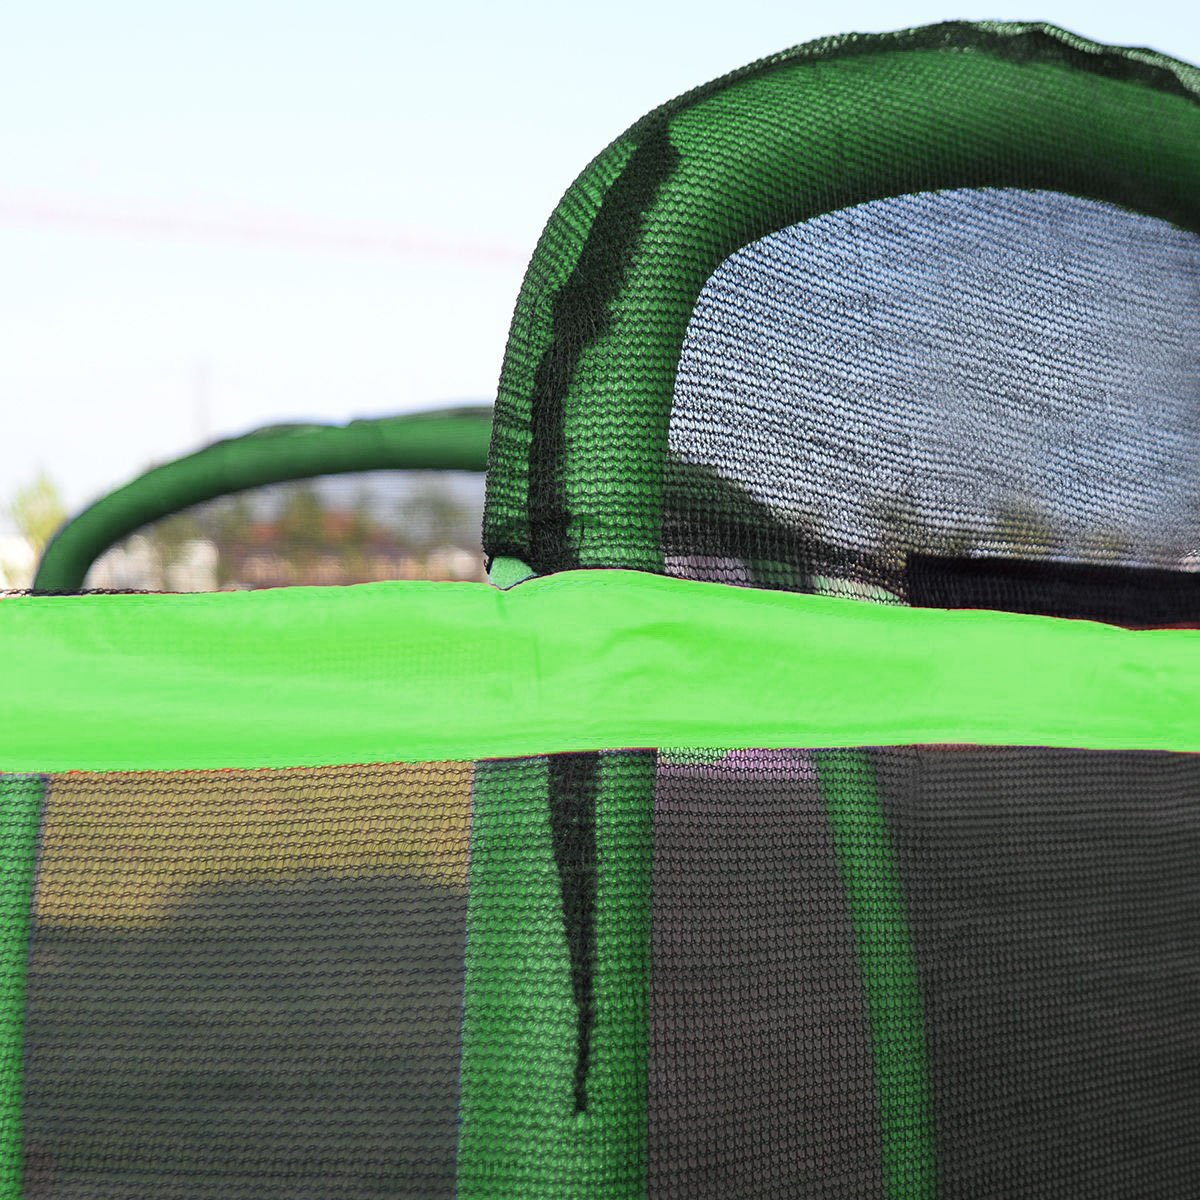 Clevr 7ft Kids Trampoline with Safety Enclosure Net & Spring Pad, 7-Foot Outdoor Round Bounce Jumper 84'' Indoor/Outdoor, Built-in Zipper Heavy Duty Frame, Green and Blue | Great Birthday Gift by Clevr (Image #8)